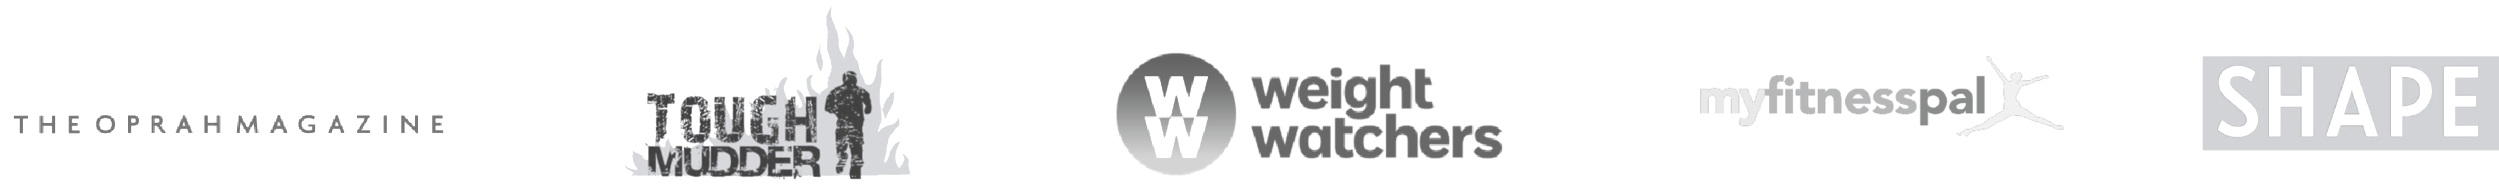 Weight-loss-banner-compressor.jpg